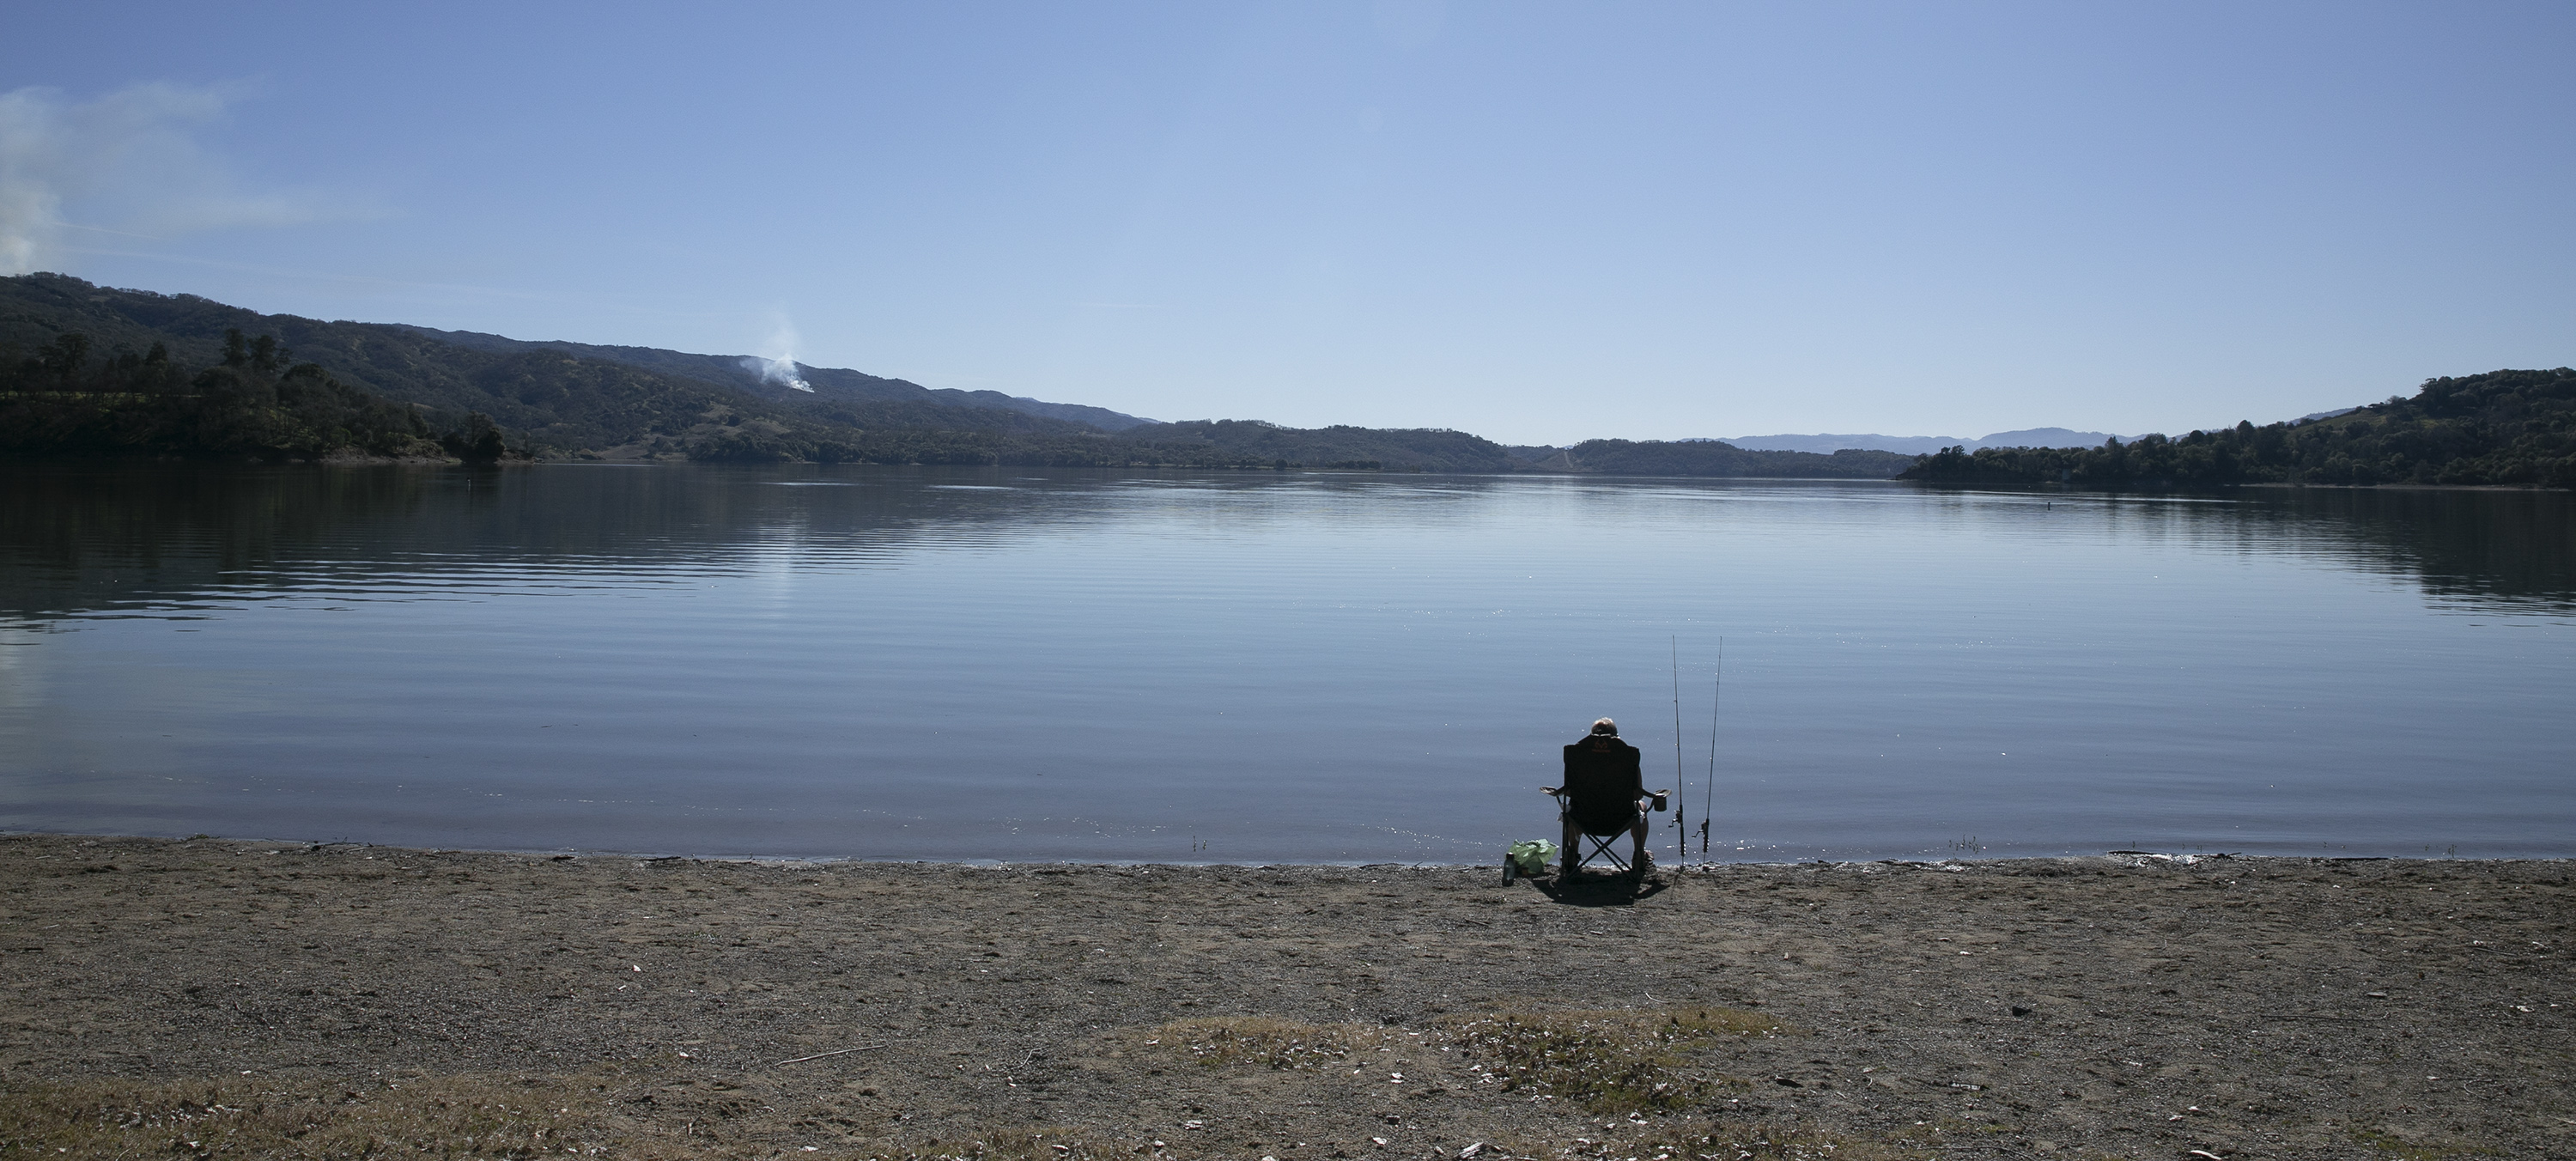 A person fishing at Lake Mendocino on February 11, 2020. Photo by Anne Wernikoff for CalMatters